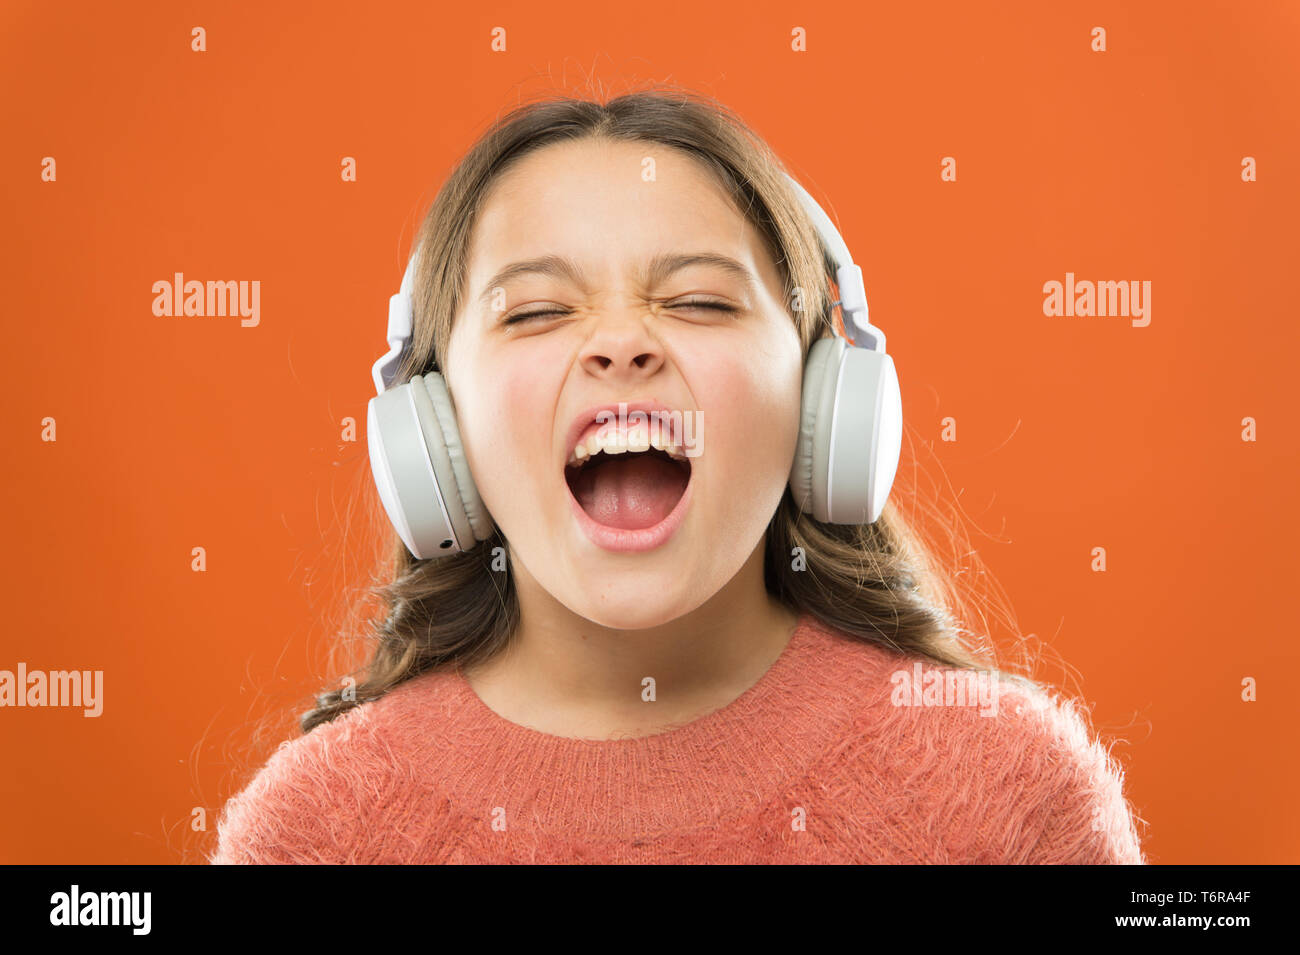 For better vocal performances. Adorable small child doing vocal on song. Little girl listening to music and singing vocal melody. Talented singer or vocalist training her vocal in wireless headphones. Stock Photo